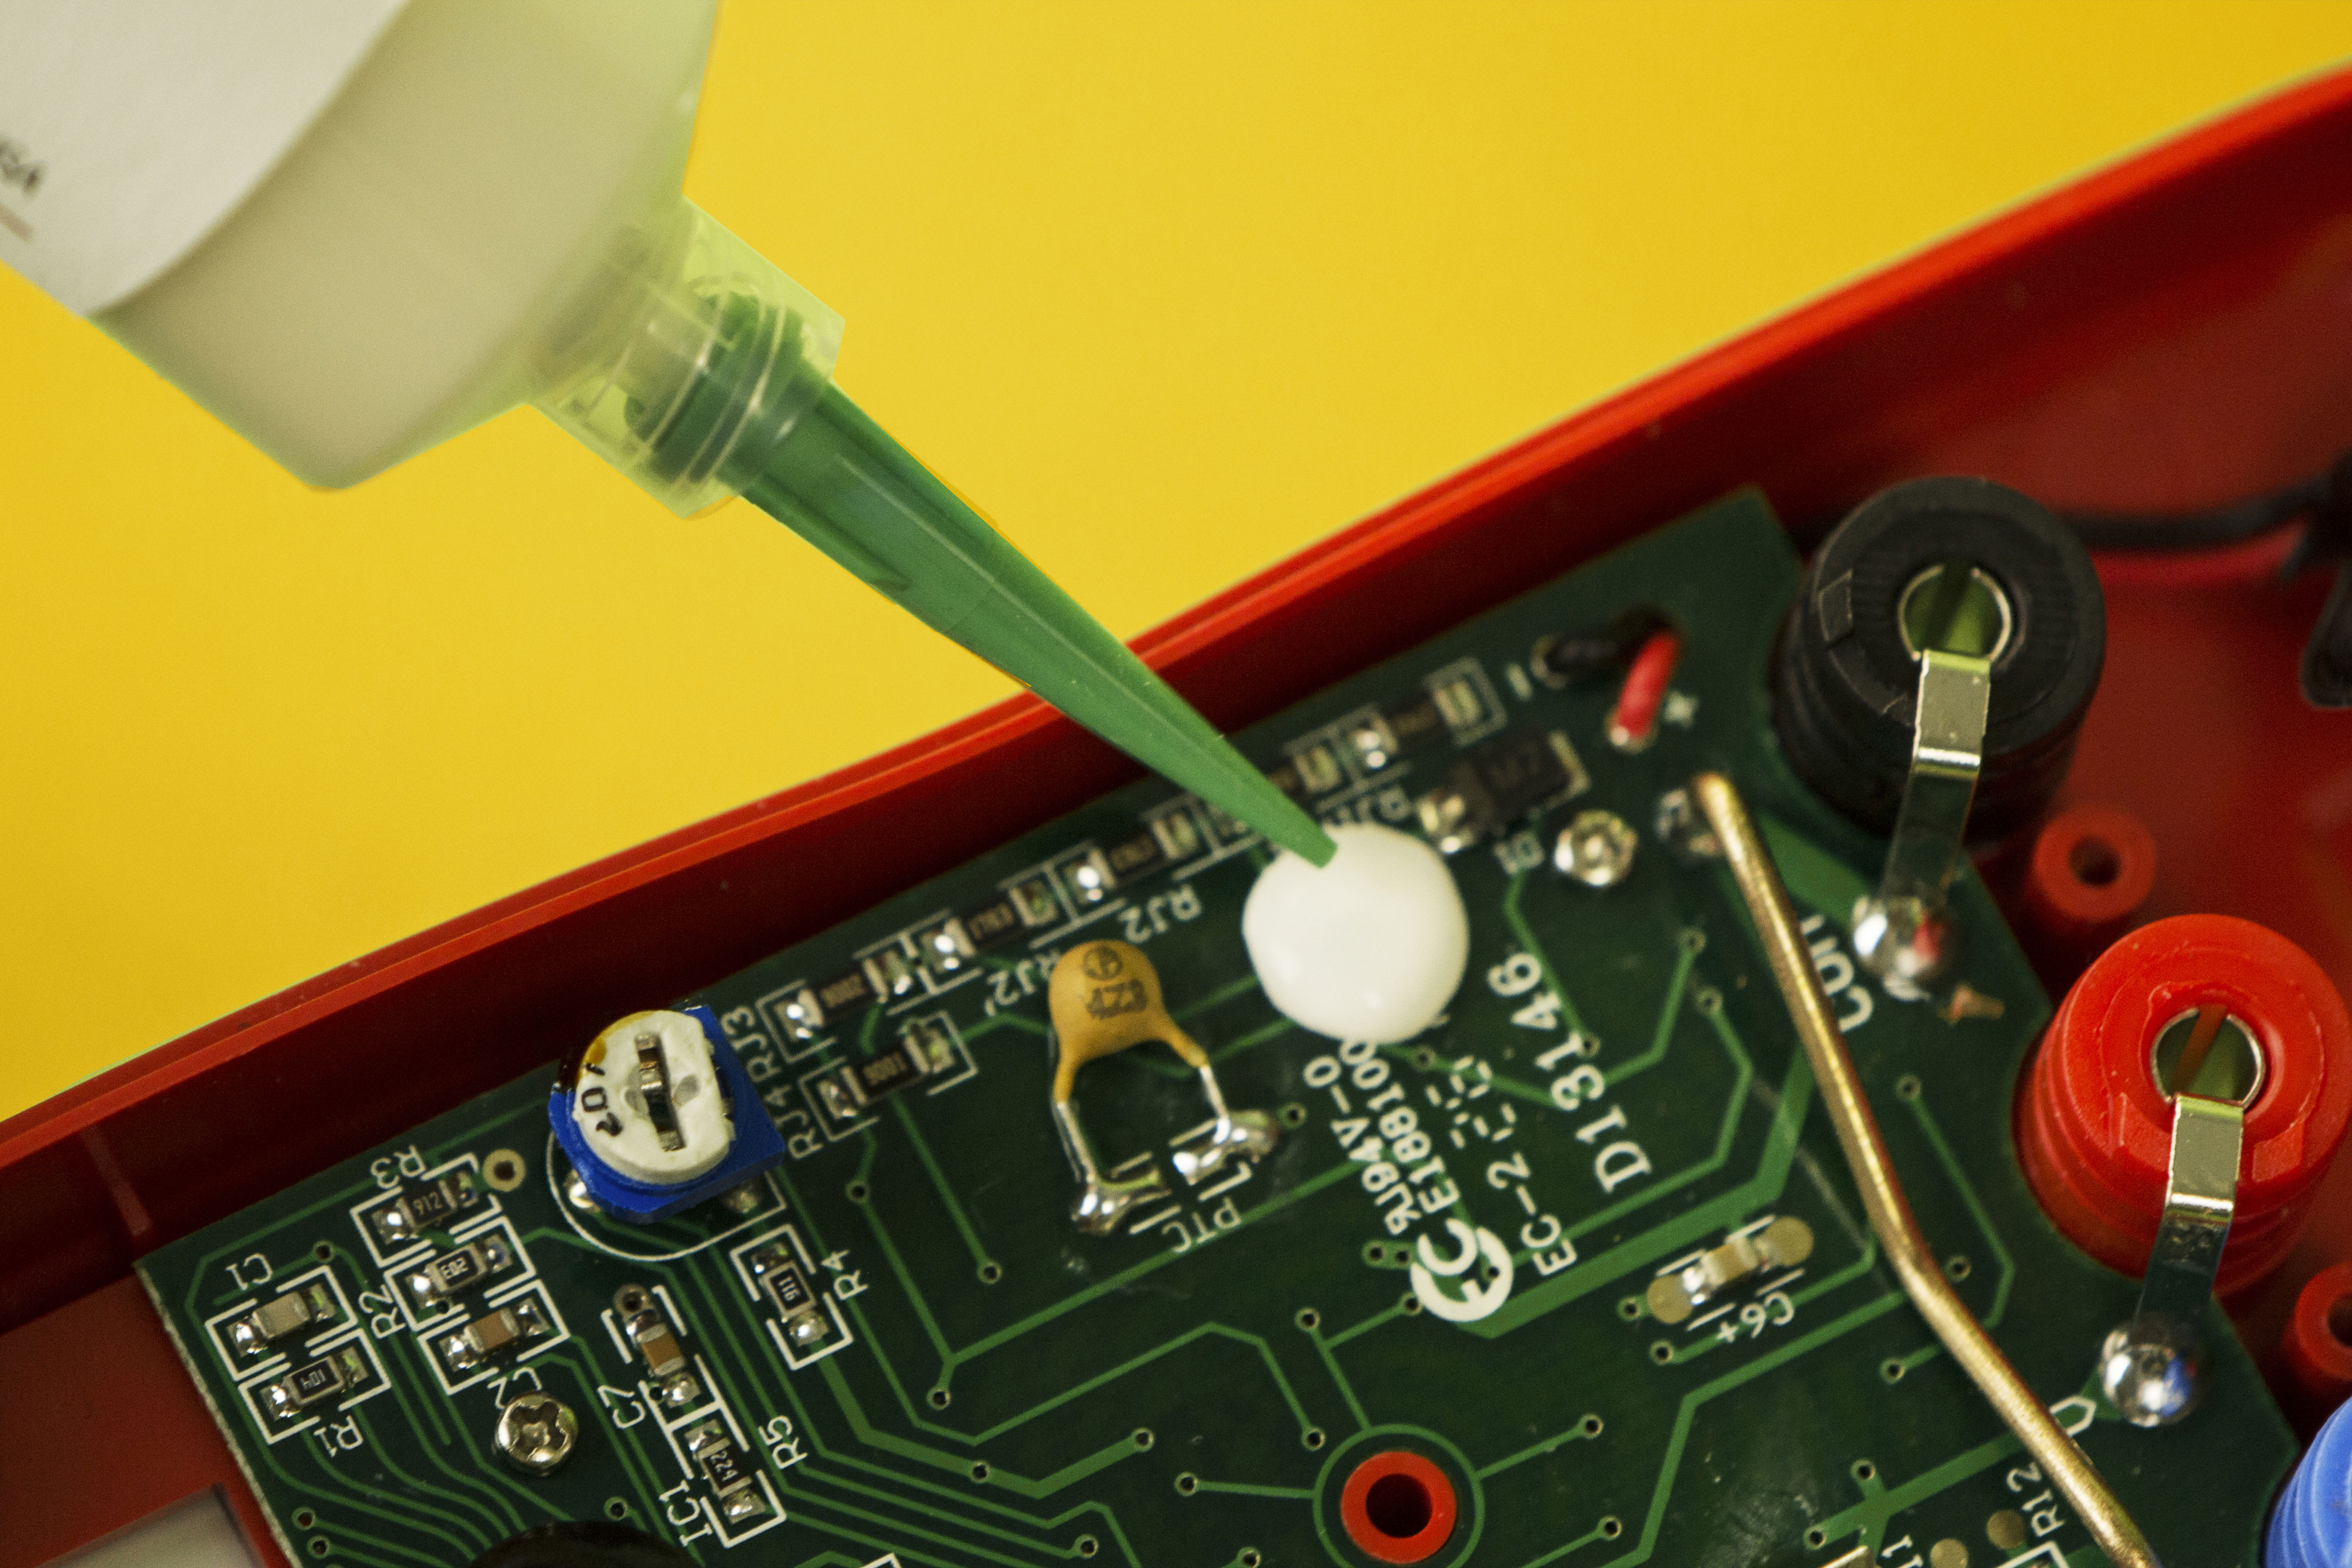 Vibration Acoustics Electrical Engineering Circuits Components